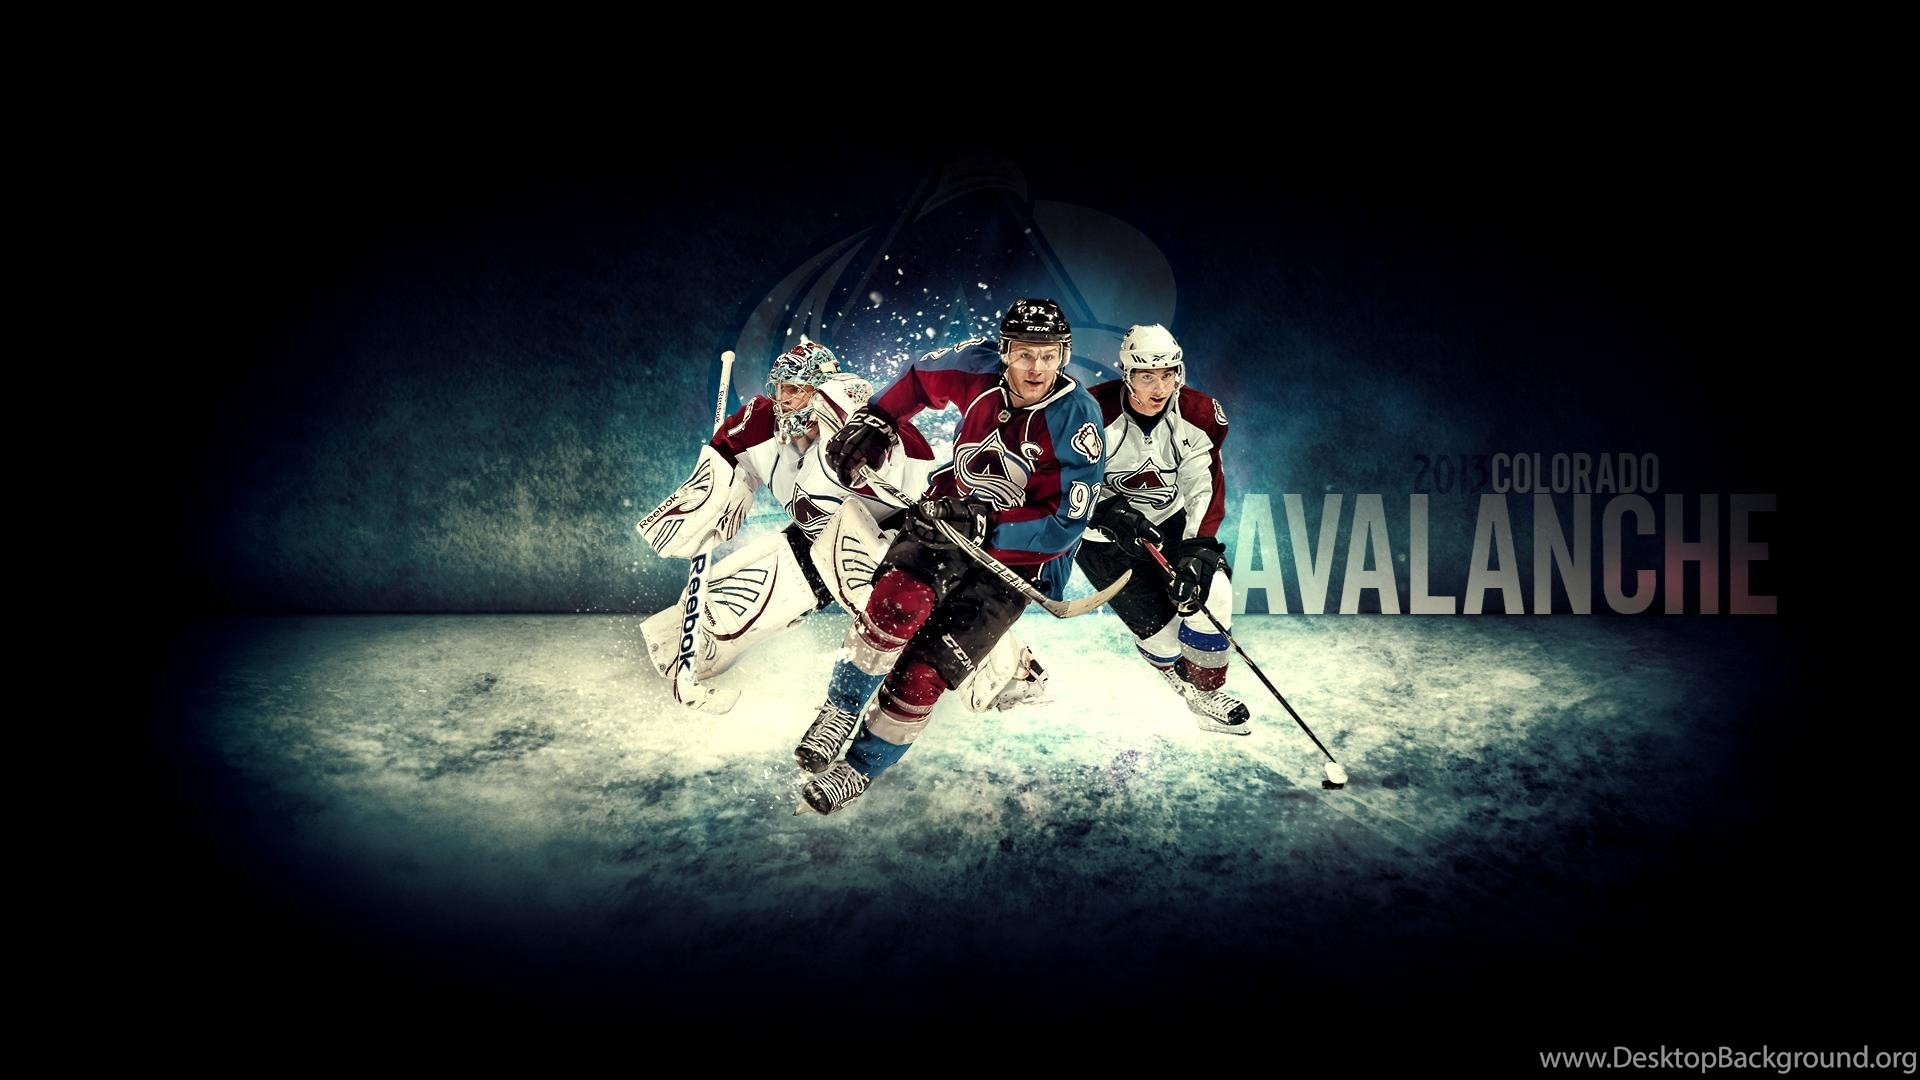 nhl player gabriel landeskog wallpapers and images wallpapers